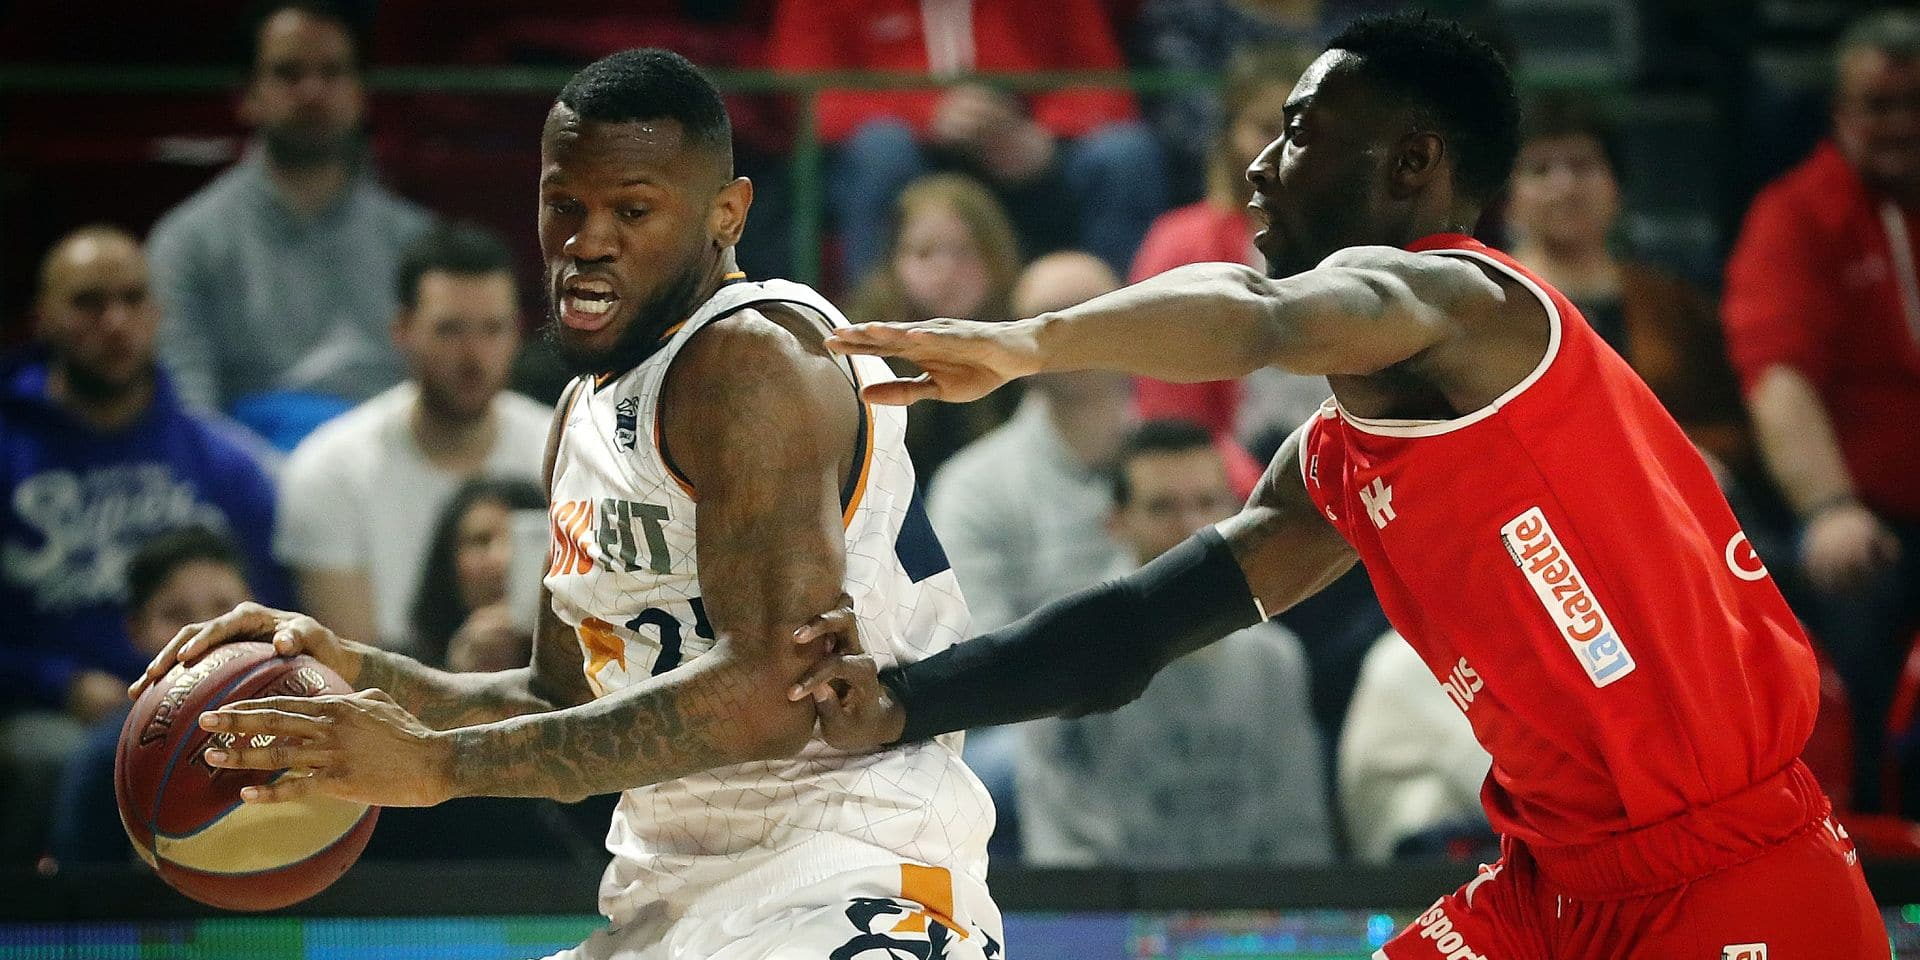 Brussels' Caleb Walker and Charleroi's Dario Hunt fight for the ball during the basketball match between Spirou Charleroi and Brussels, Friday 01 March 2019 in Charleroi, on day 18 of the 'EuroMillions League' Belgian first division basket competition. BELGA PHOTO VIRGINIE LEFOUR